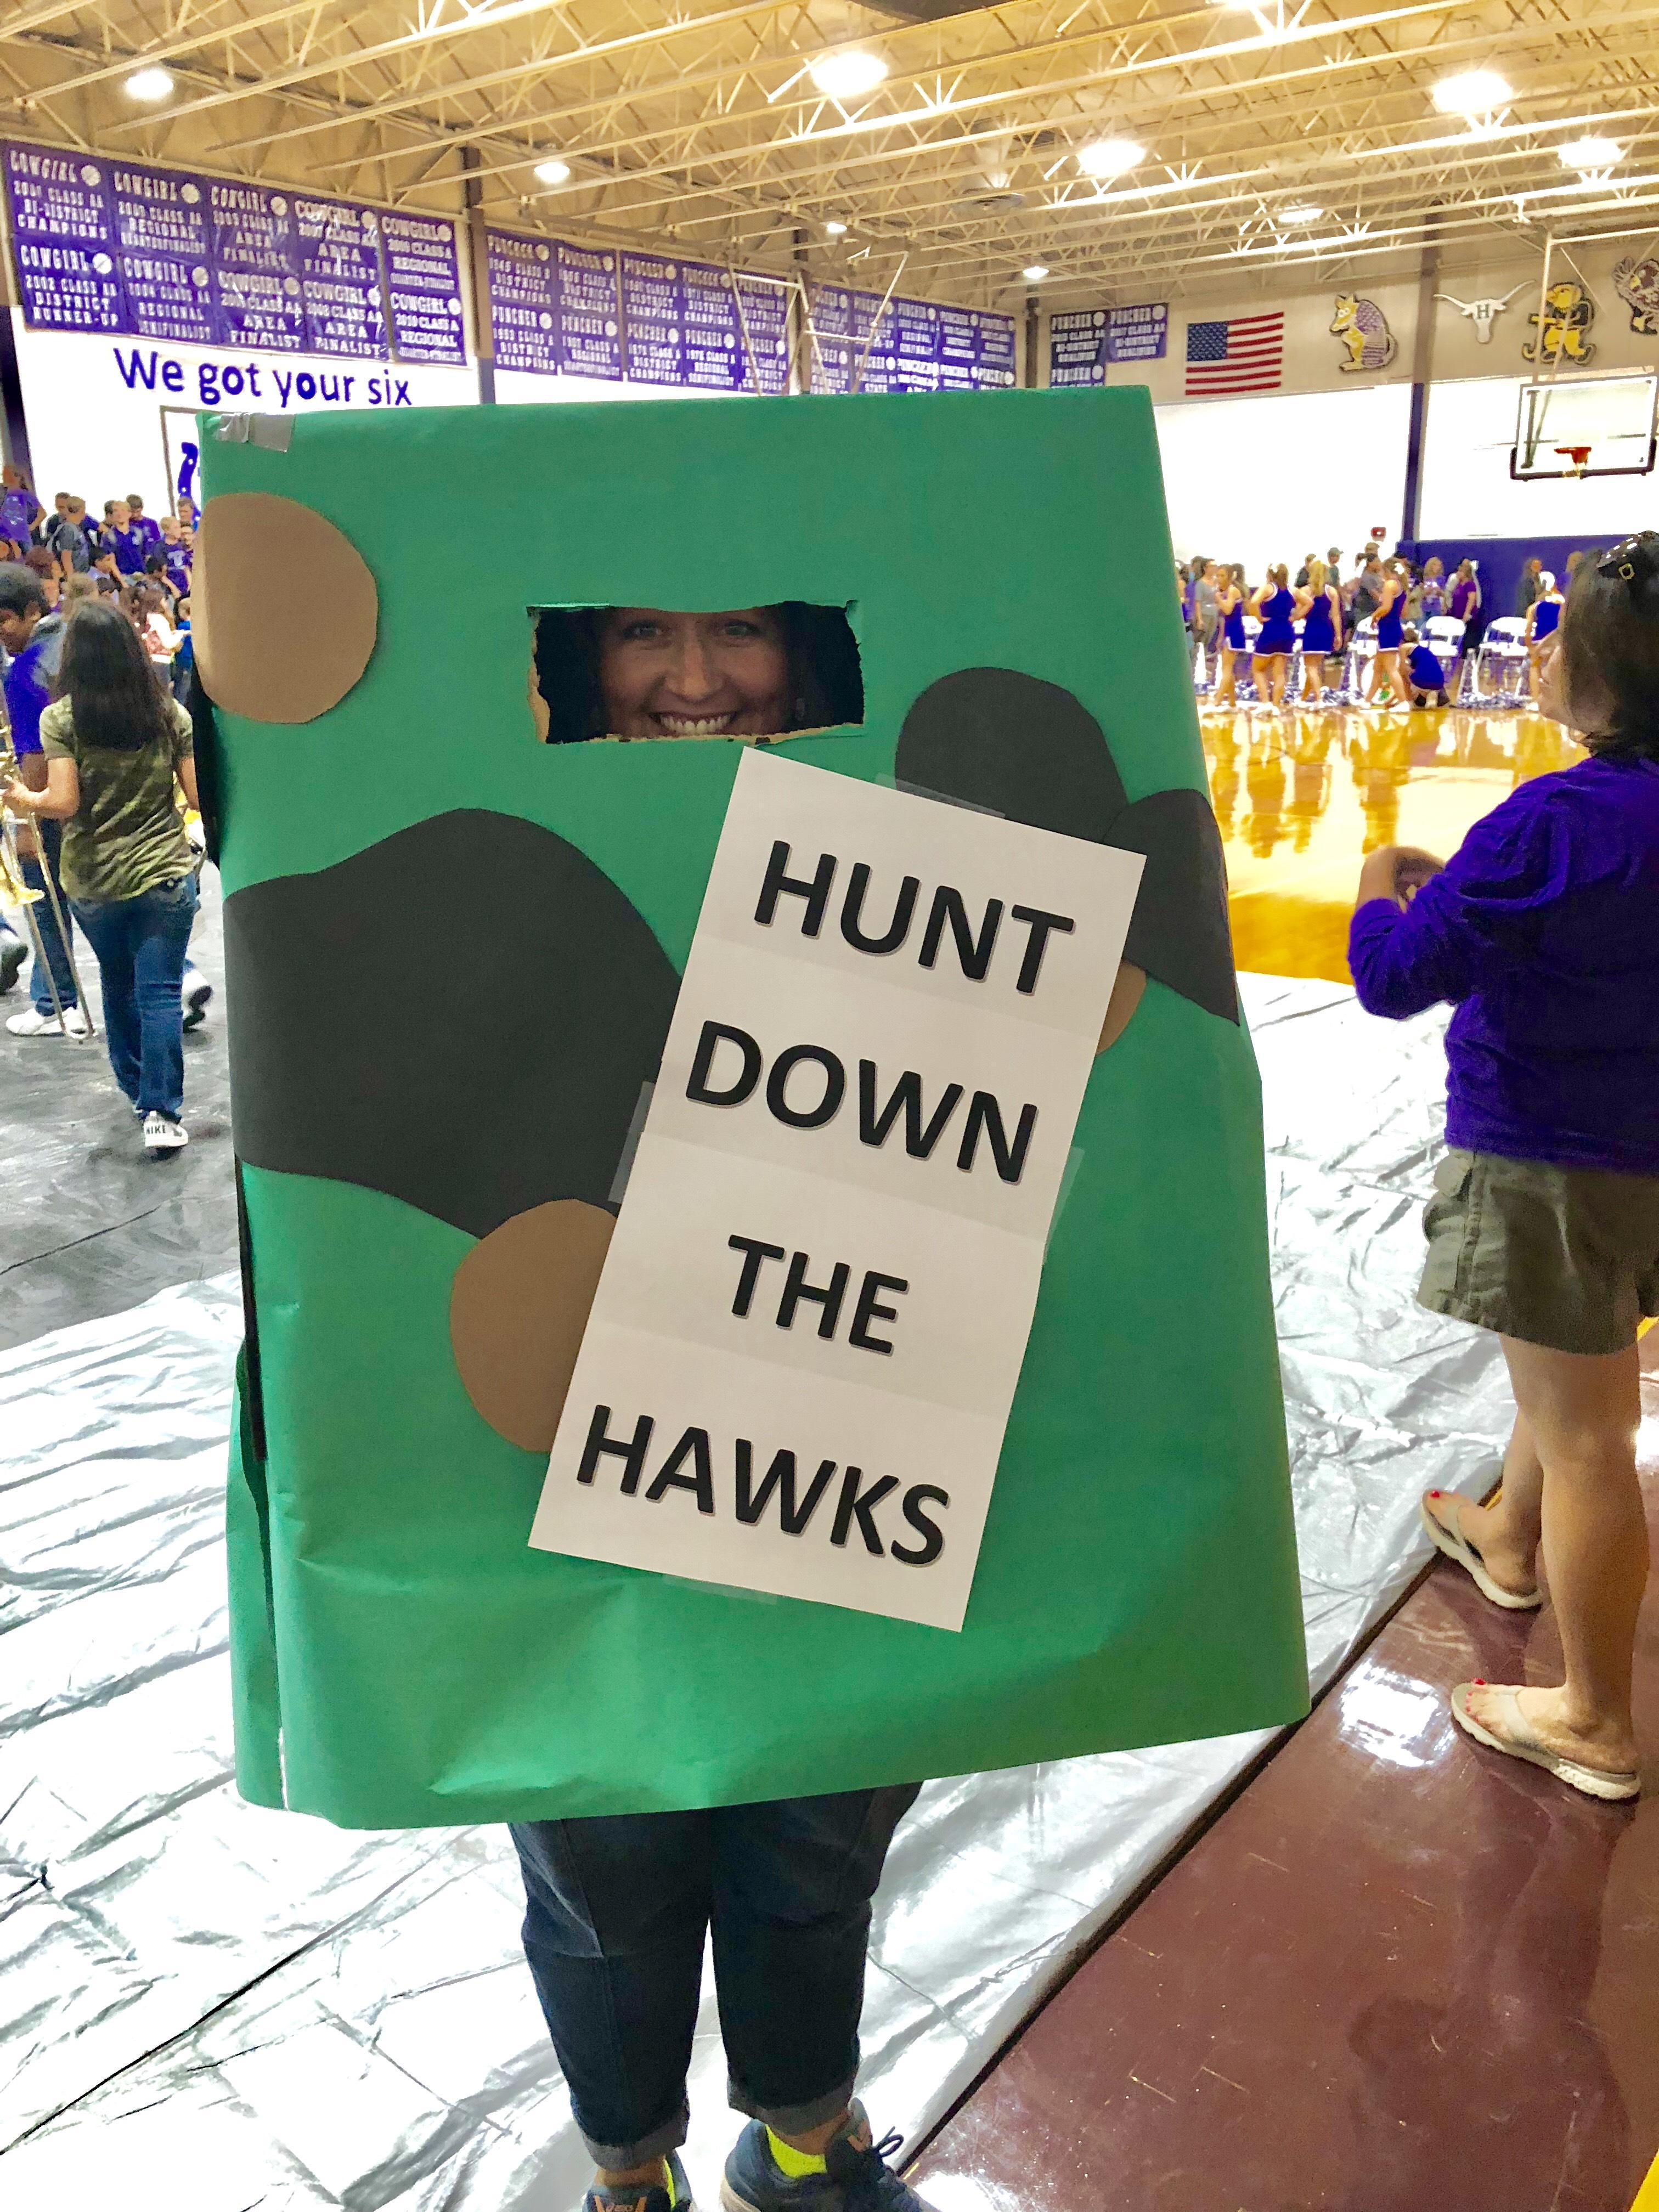 Mrs. Armstrong hunting some Hawks!